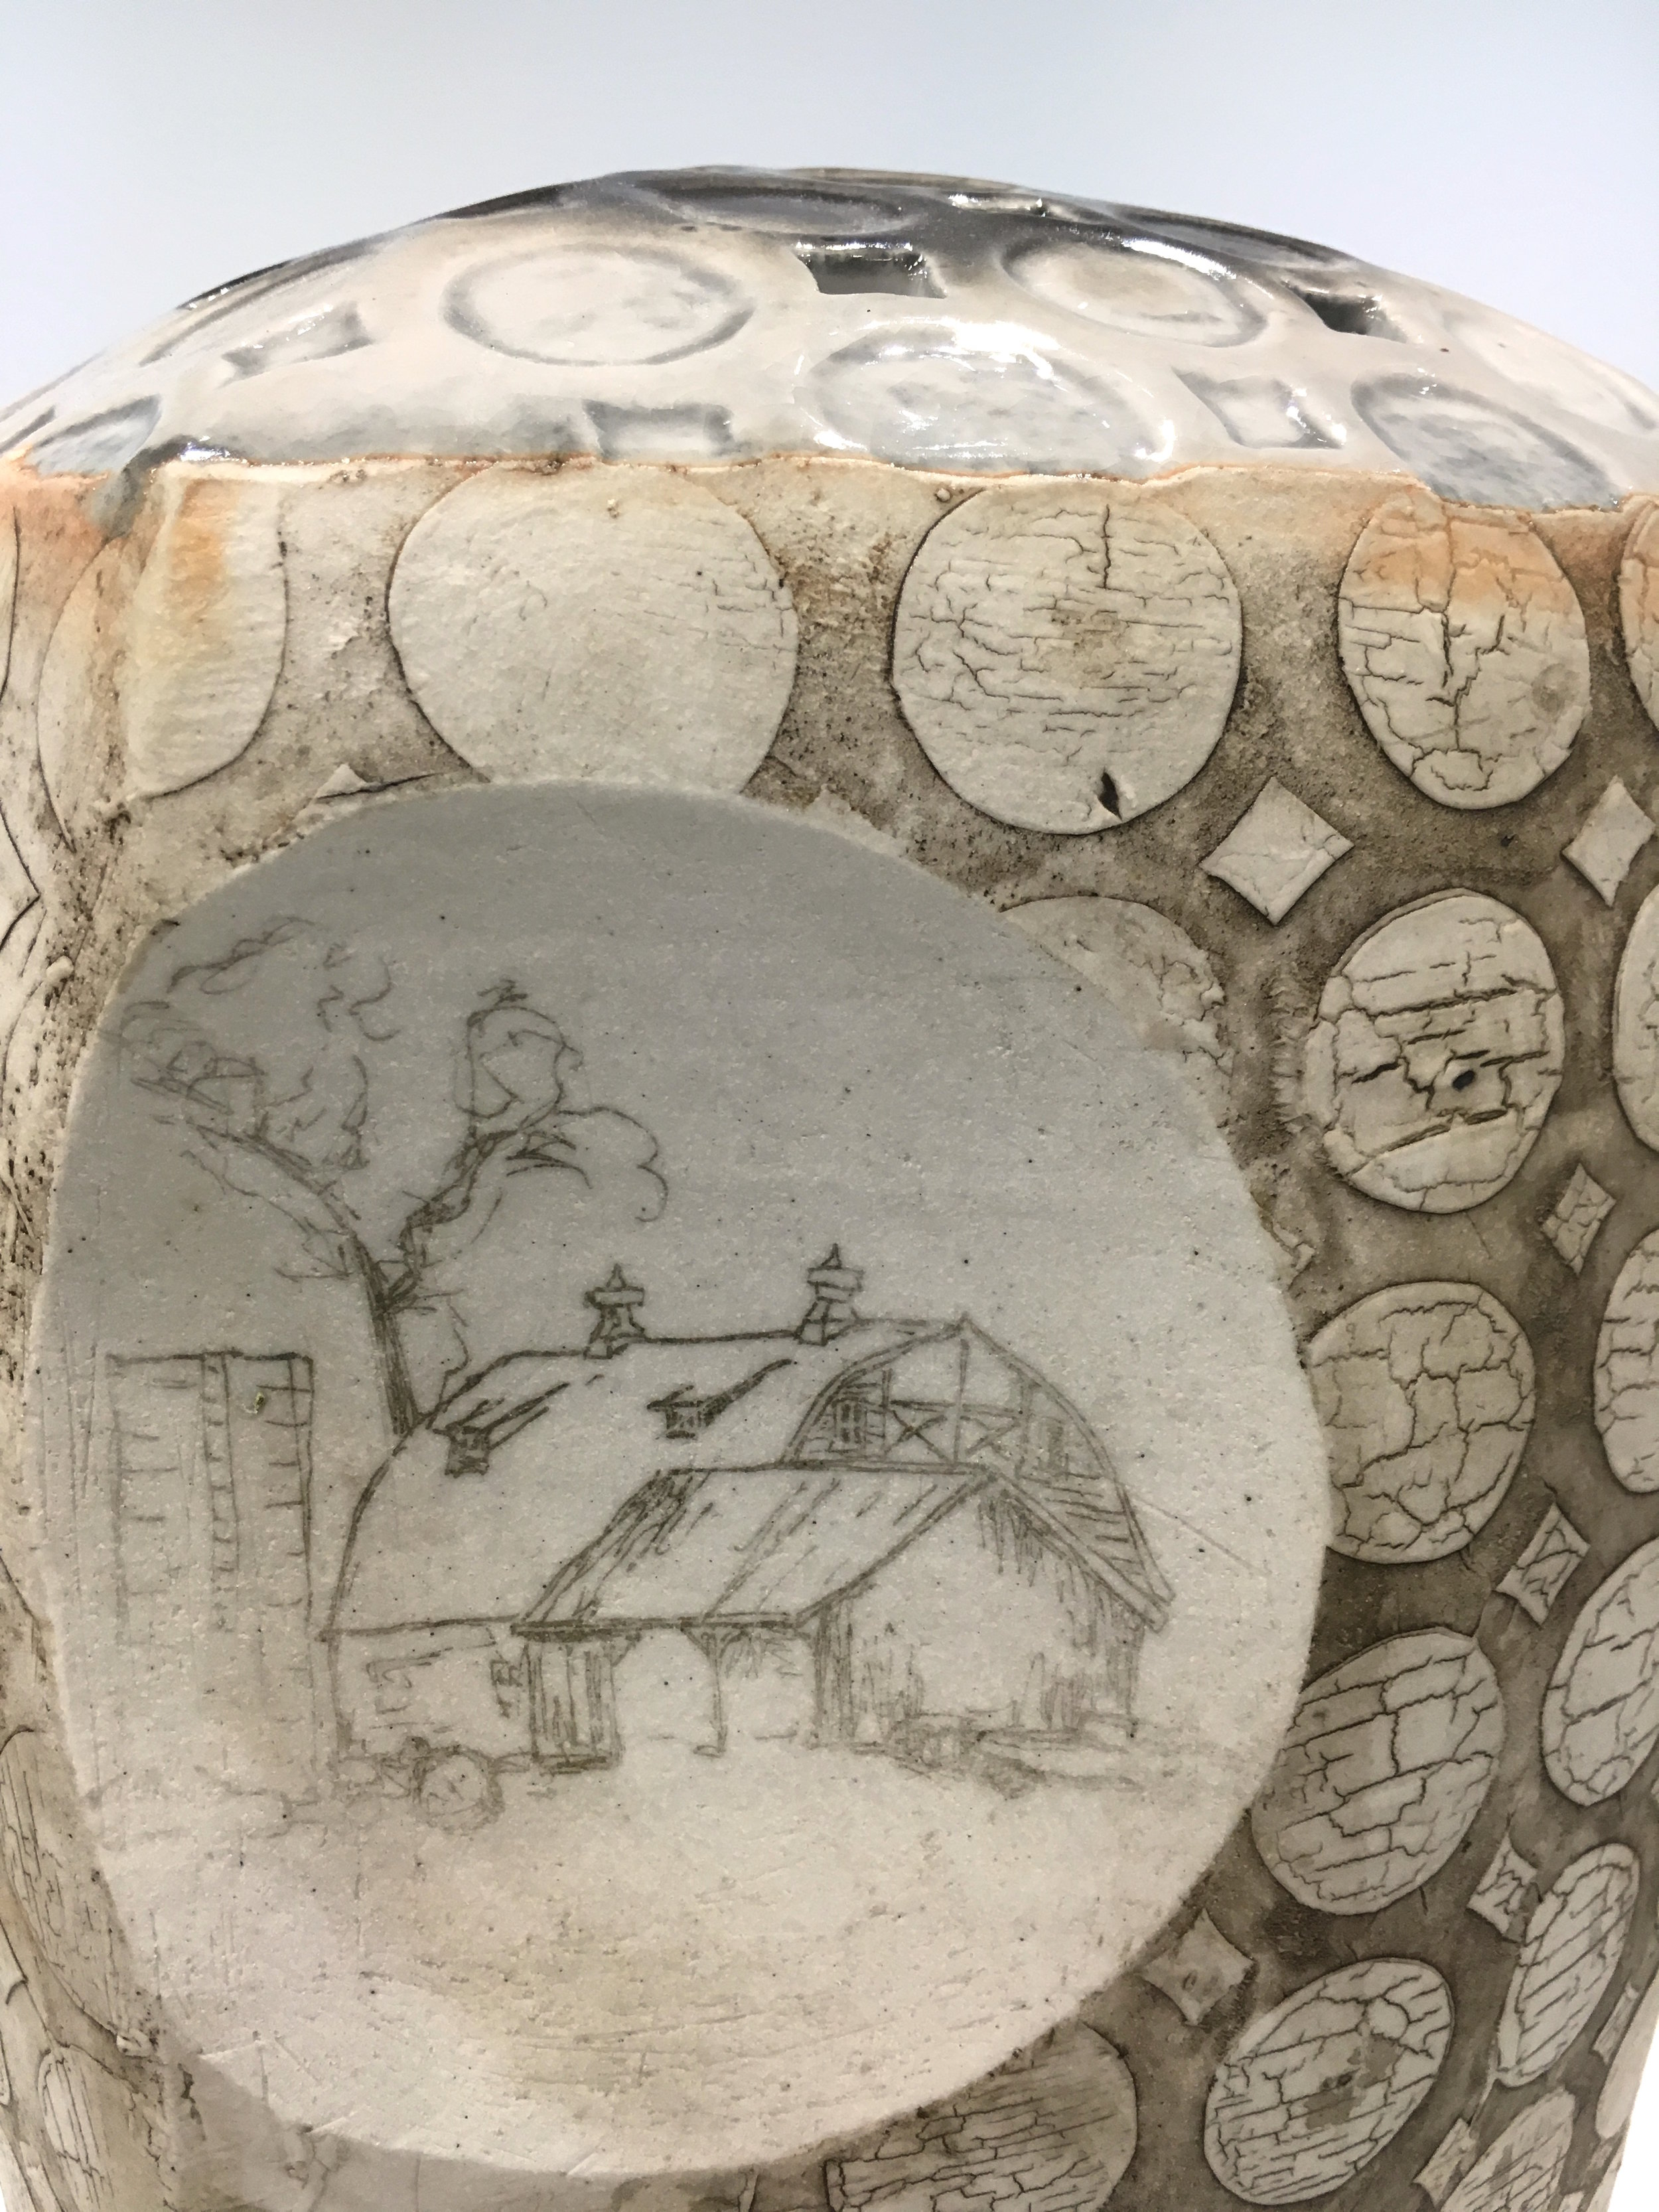 Winter Clay Classes - This mixed levels class will offer wheel throwing instruction for beginning to advanced students. The class will meet on Tuesday evenings from 6-9pm for 6 weeks starting November 13th. and run through December 20th. 2018$150 to register, class includes 1 #25 bag of clay, glazes, bisque firing and glaze firing.5 students maximum